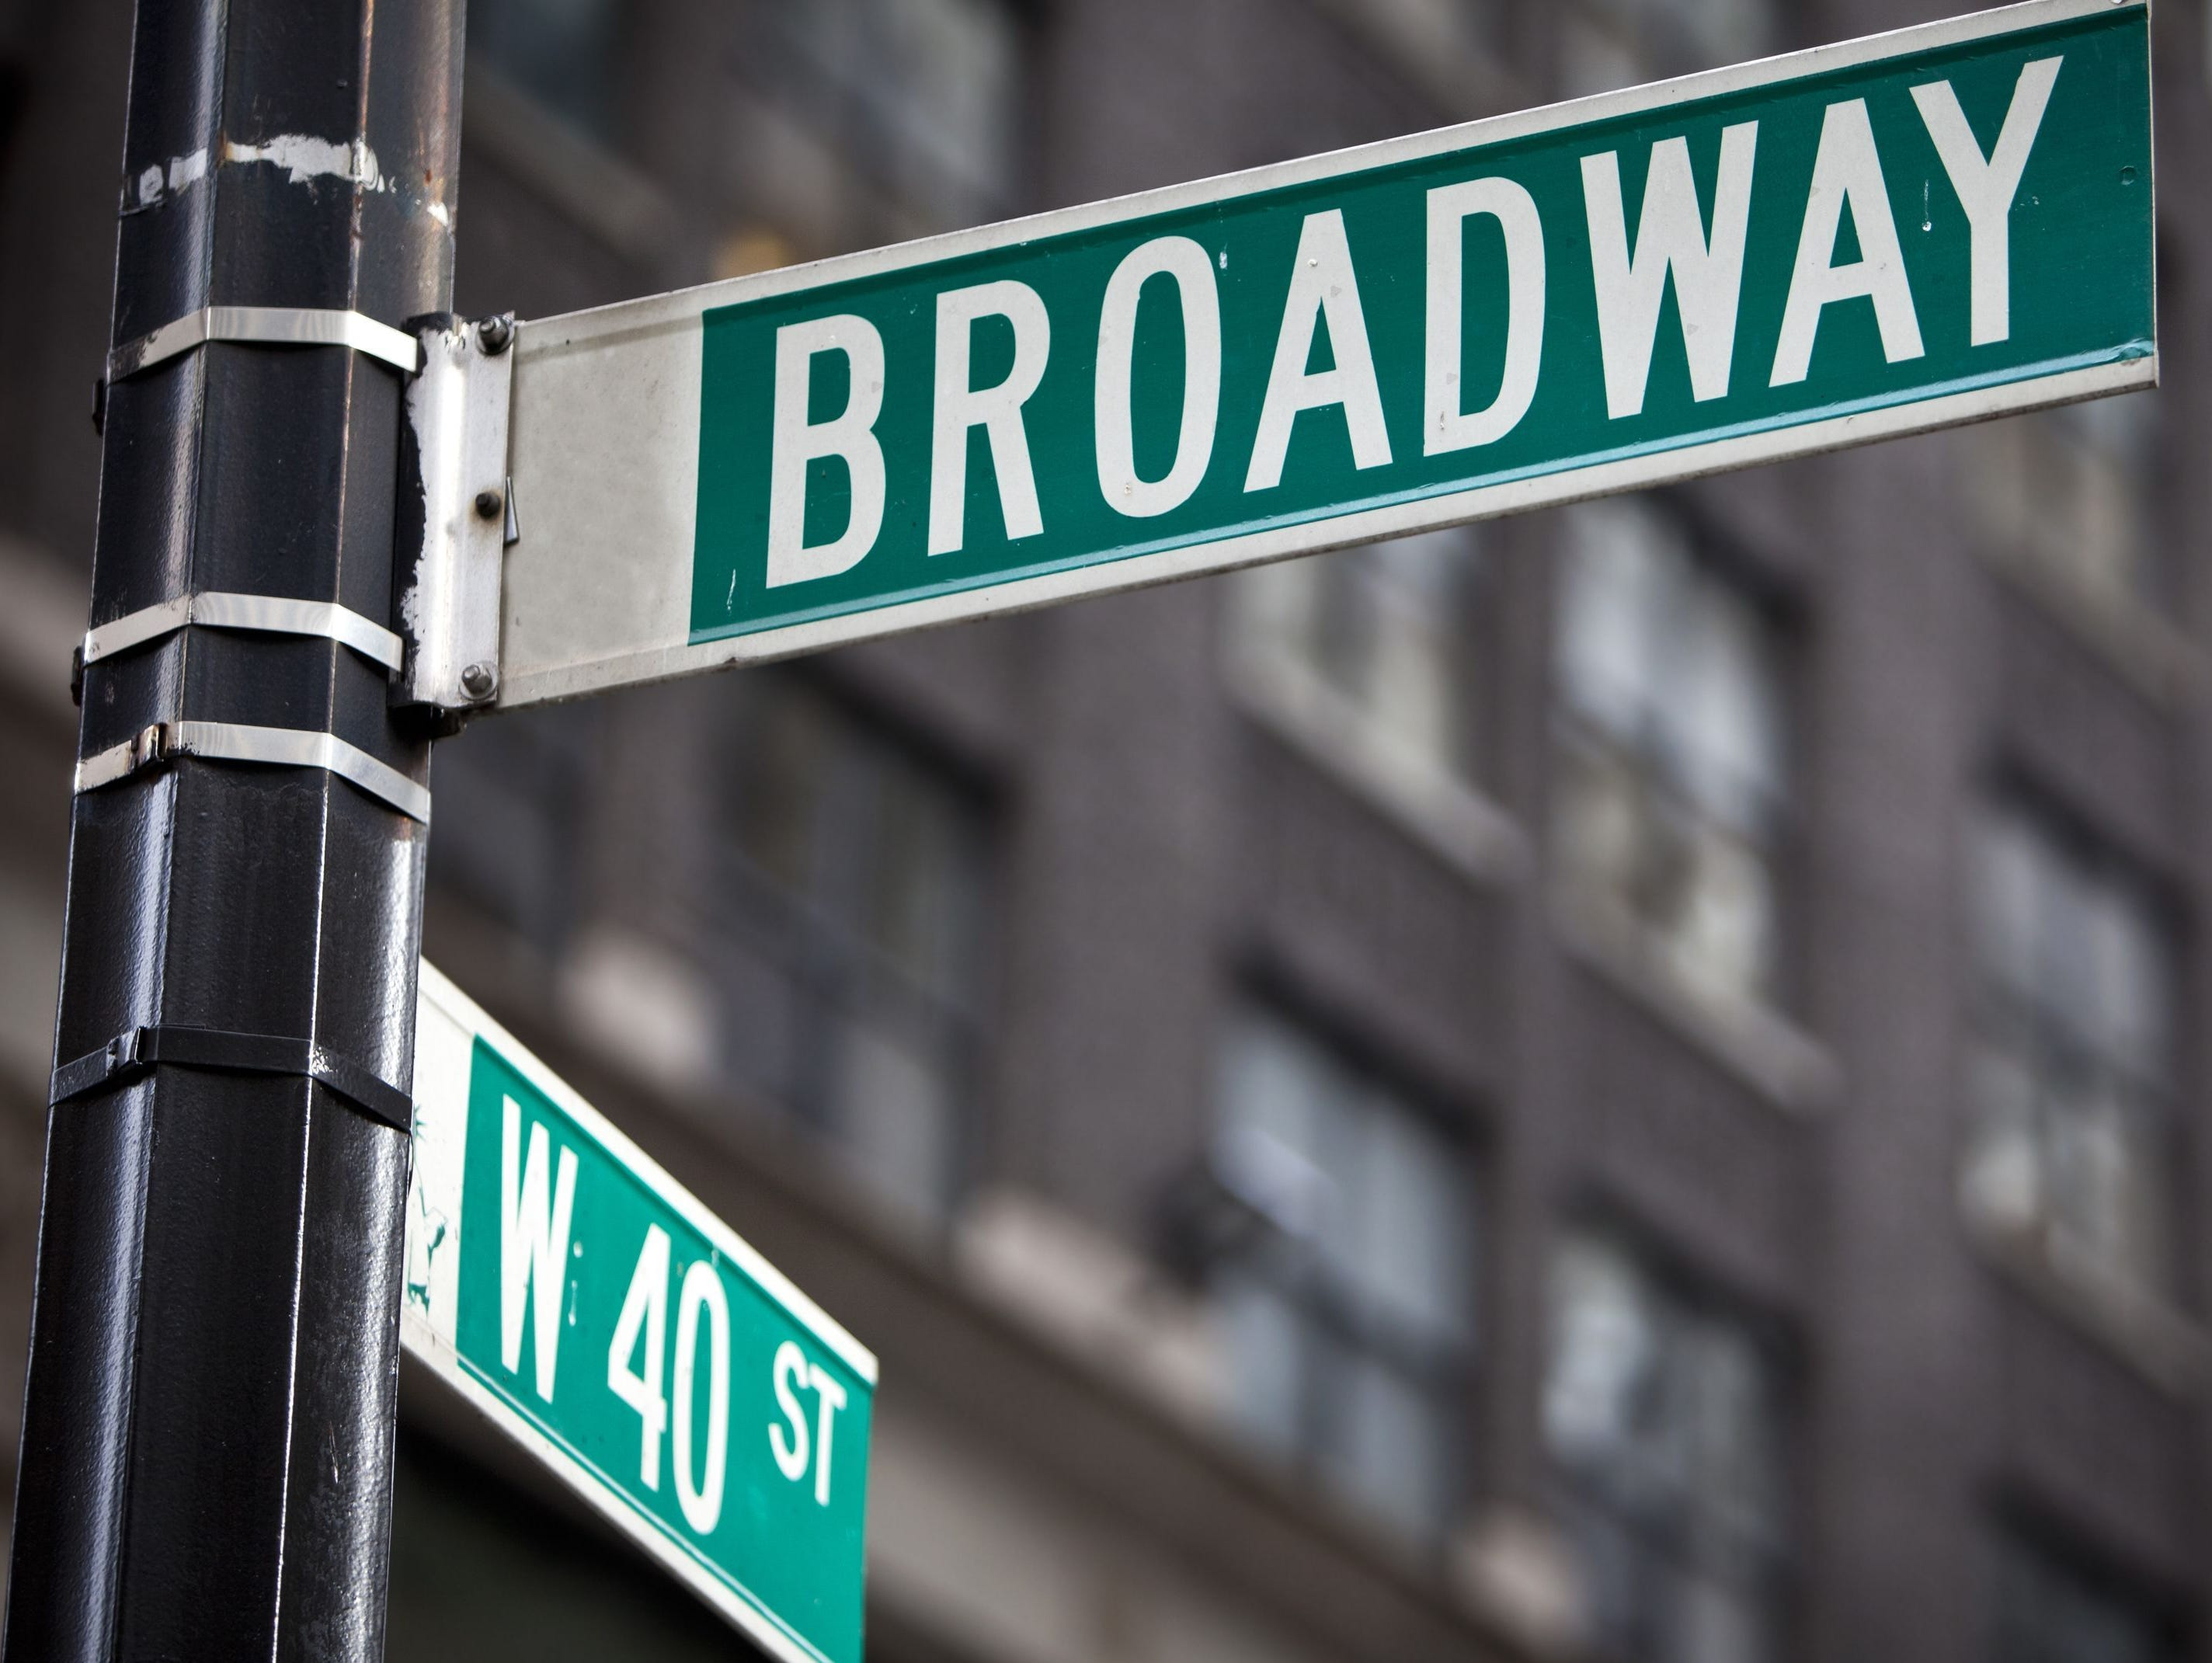 Check out the latest on and off-Broadway shows at Insider-only prices.